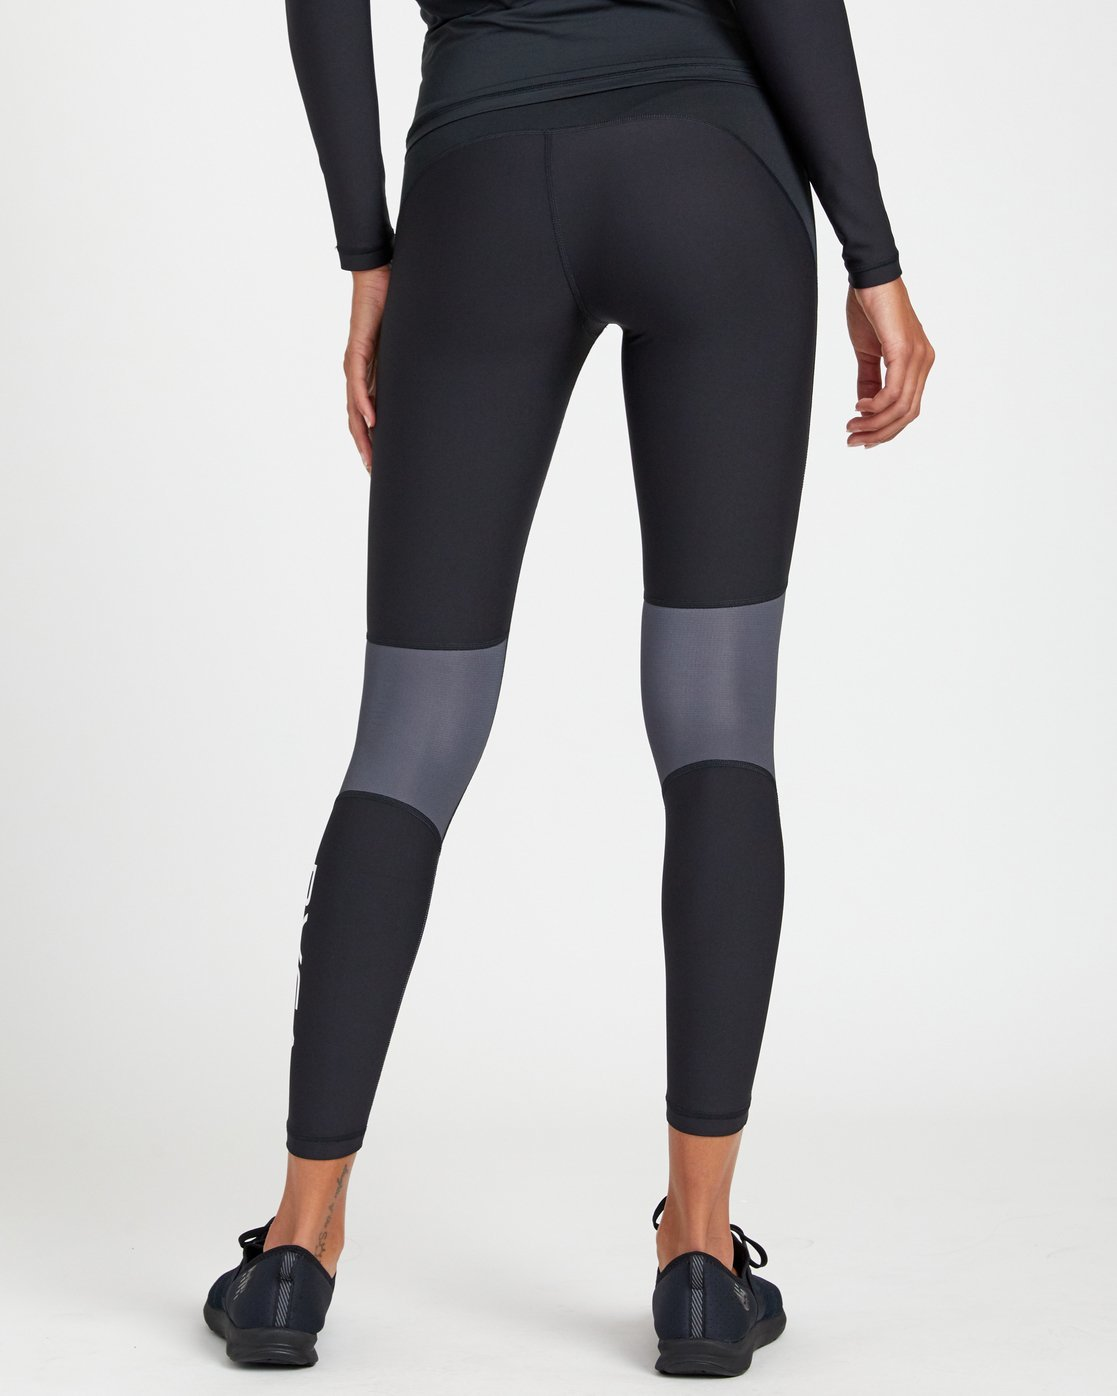 2 COMPRESSION LEGGING Black R407883 RVCA